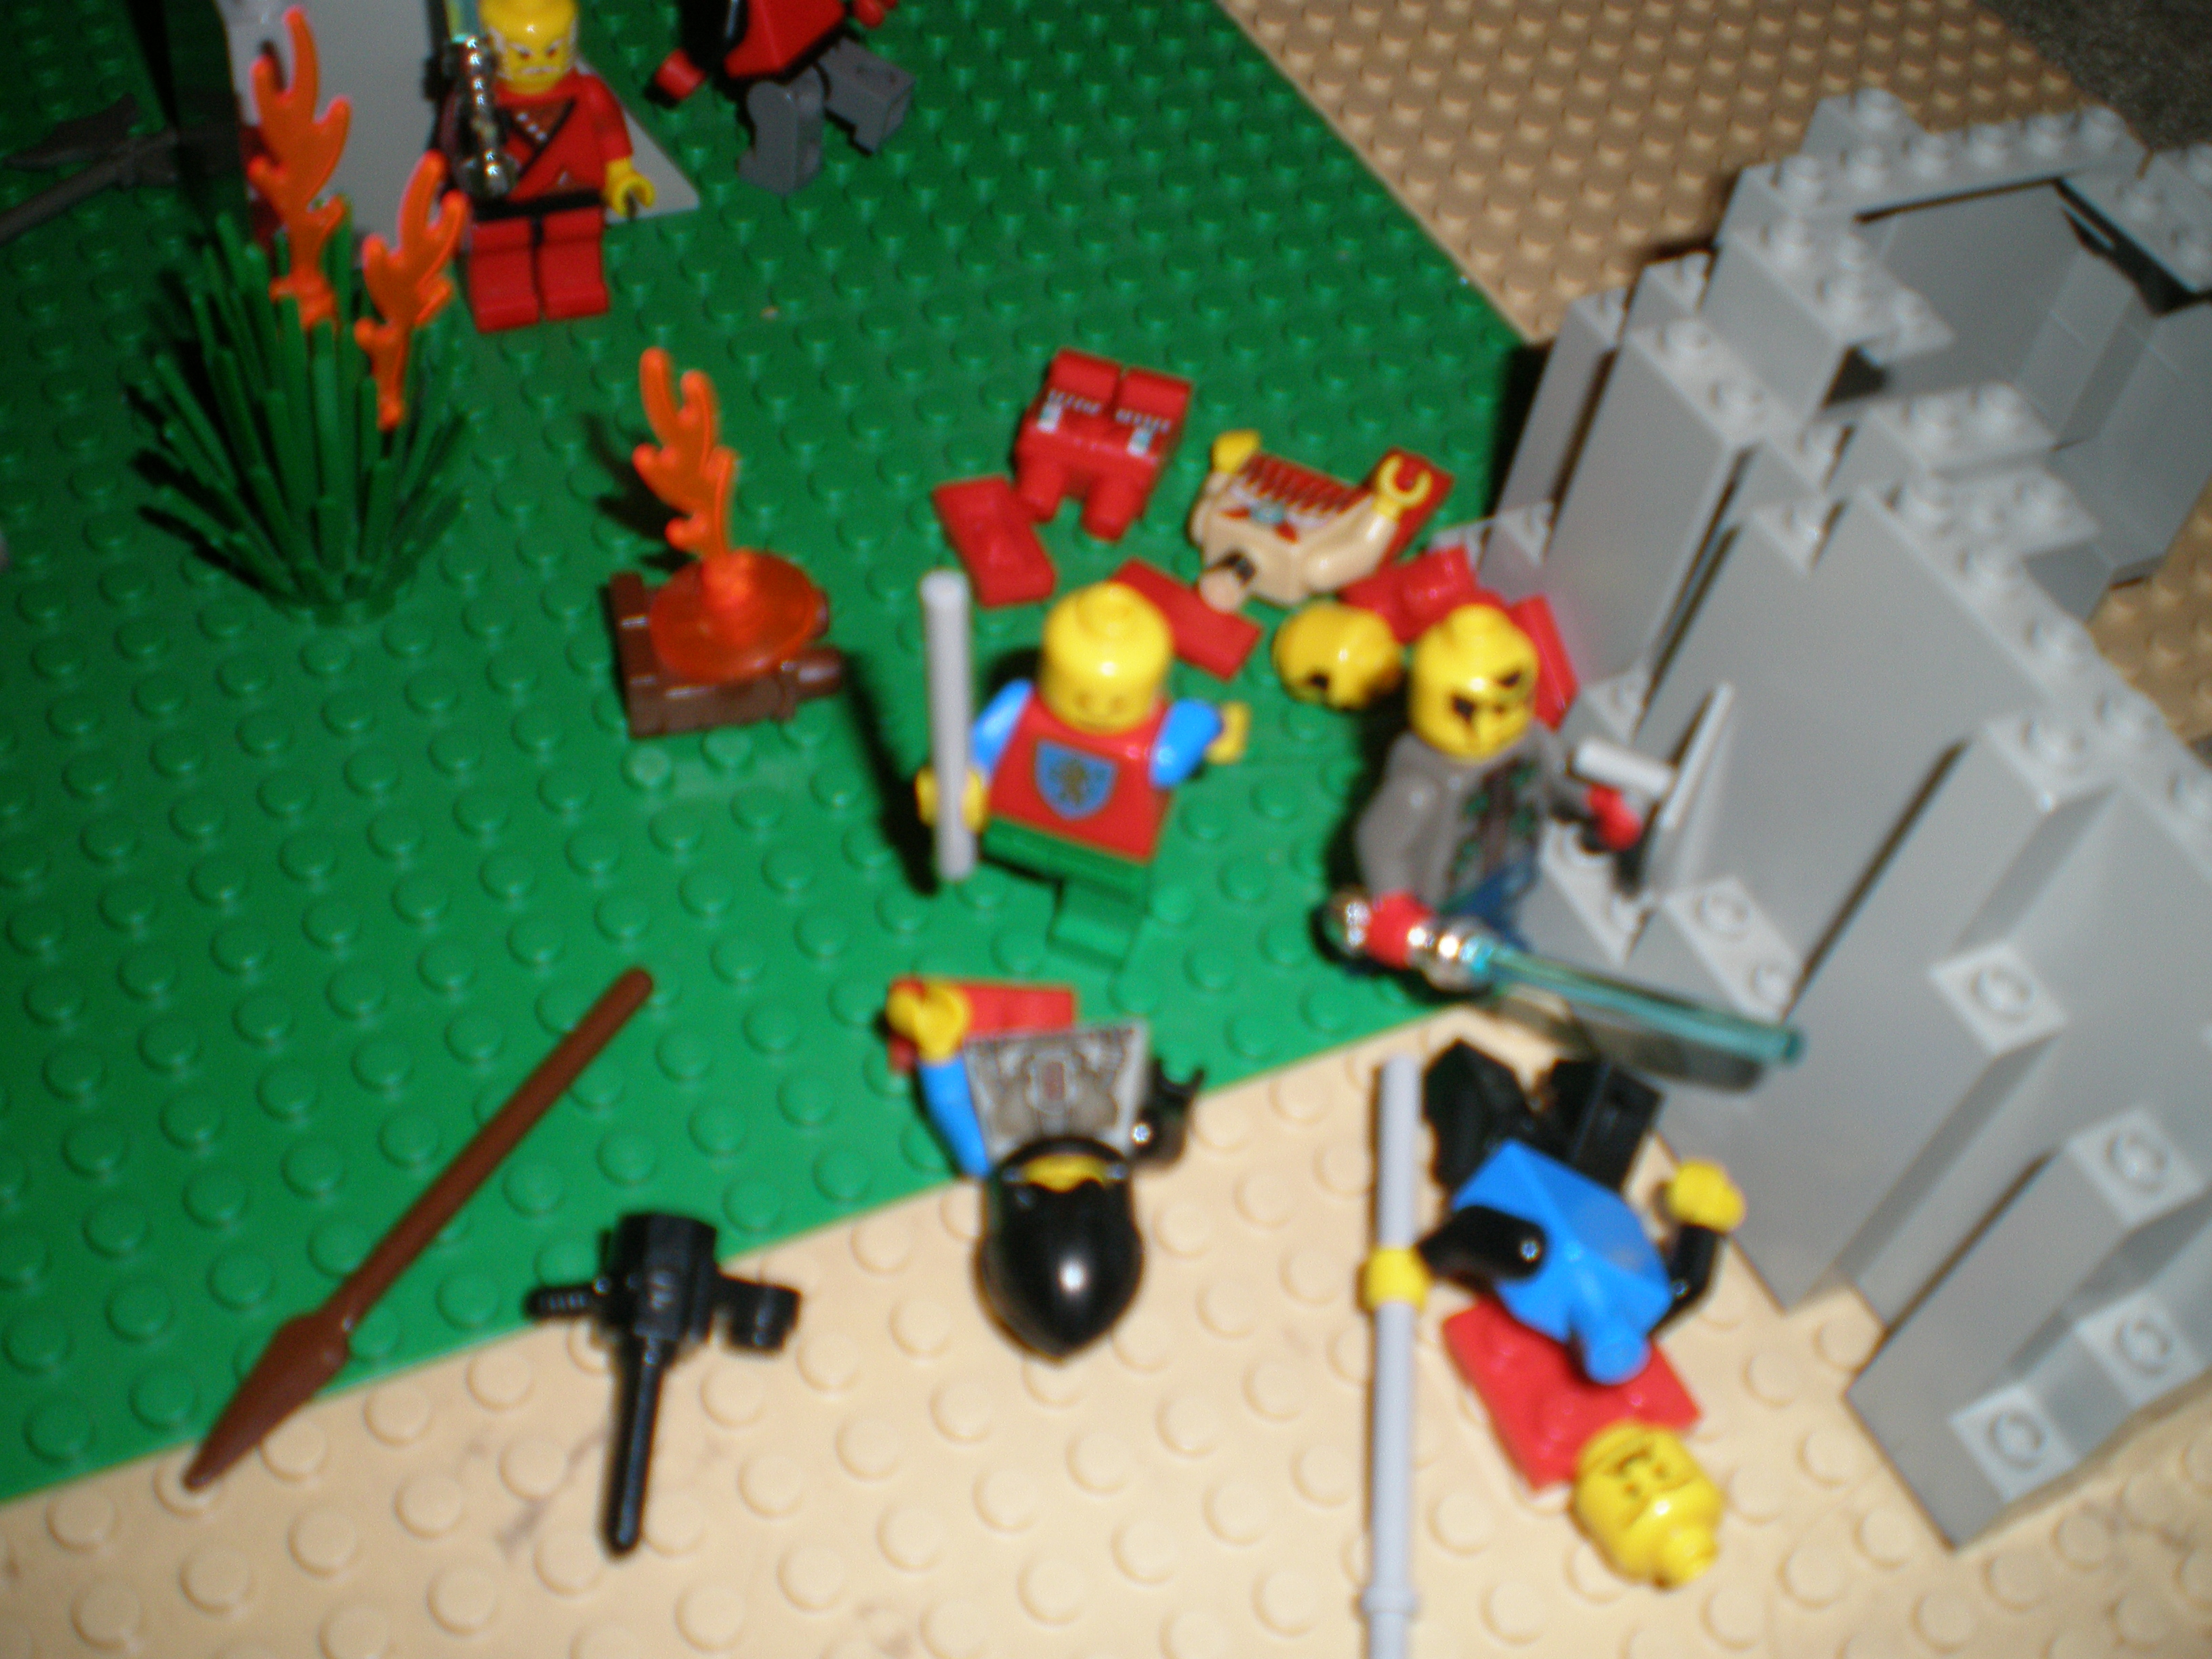 armagendon_lego_battle_004.jpg